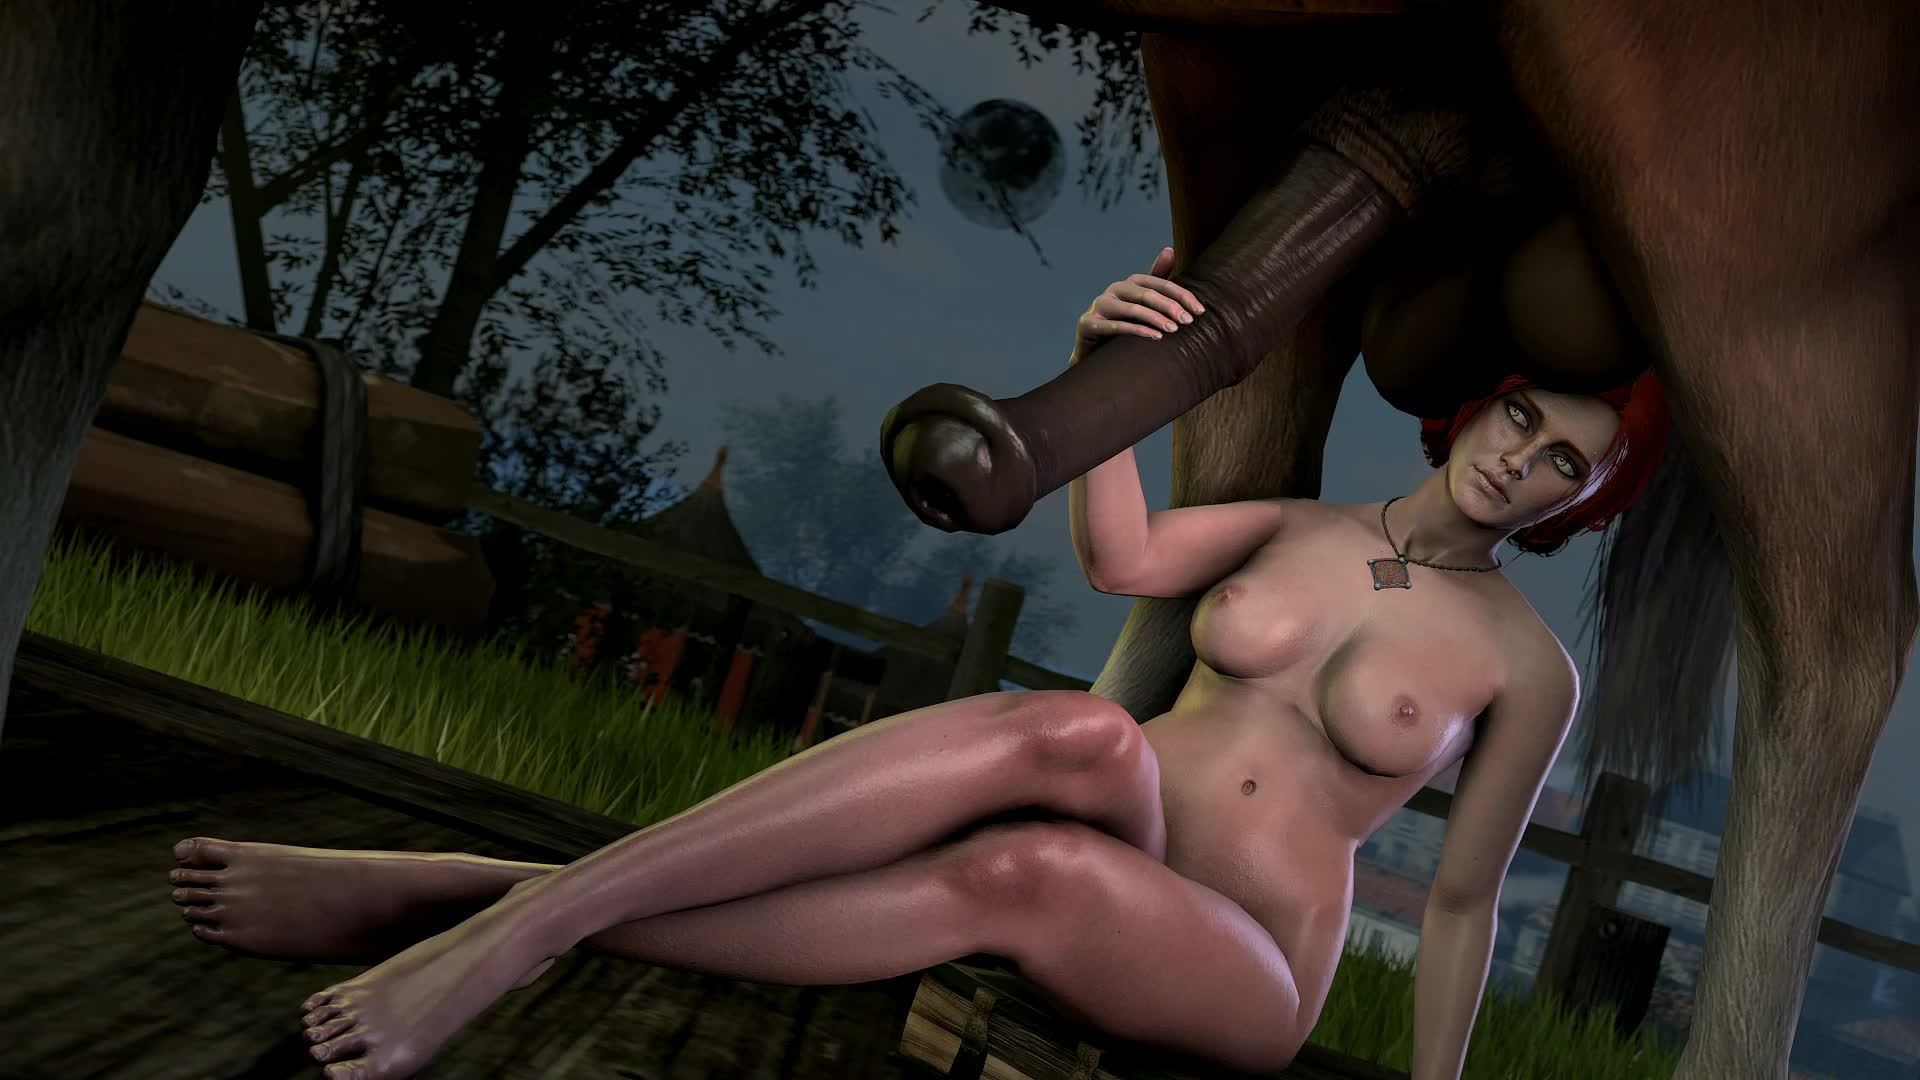 The witcher 2 porno anime hentay tubes